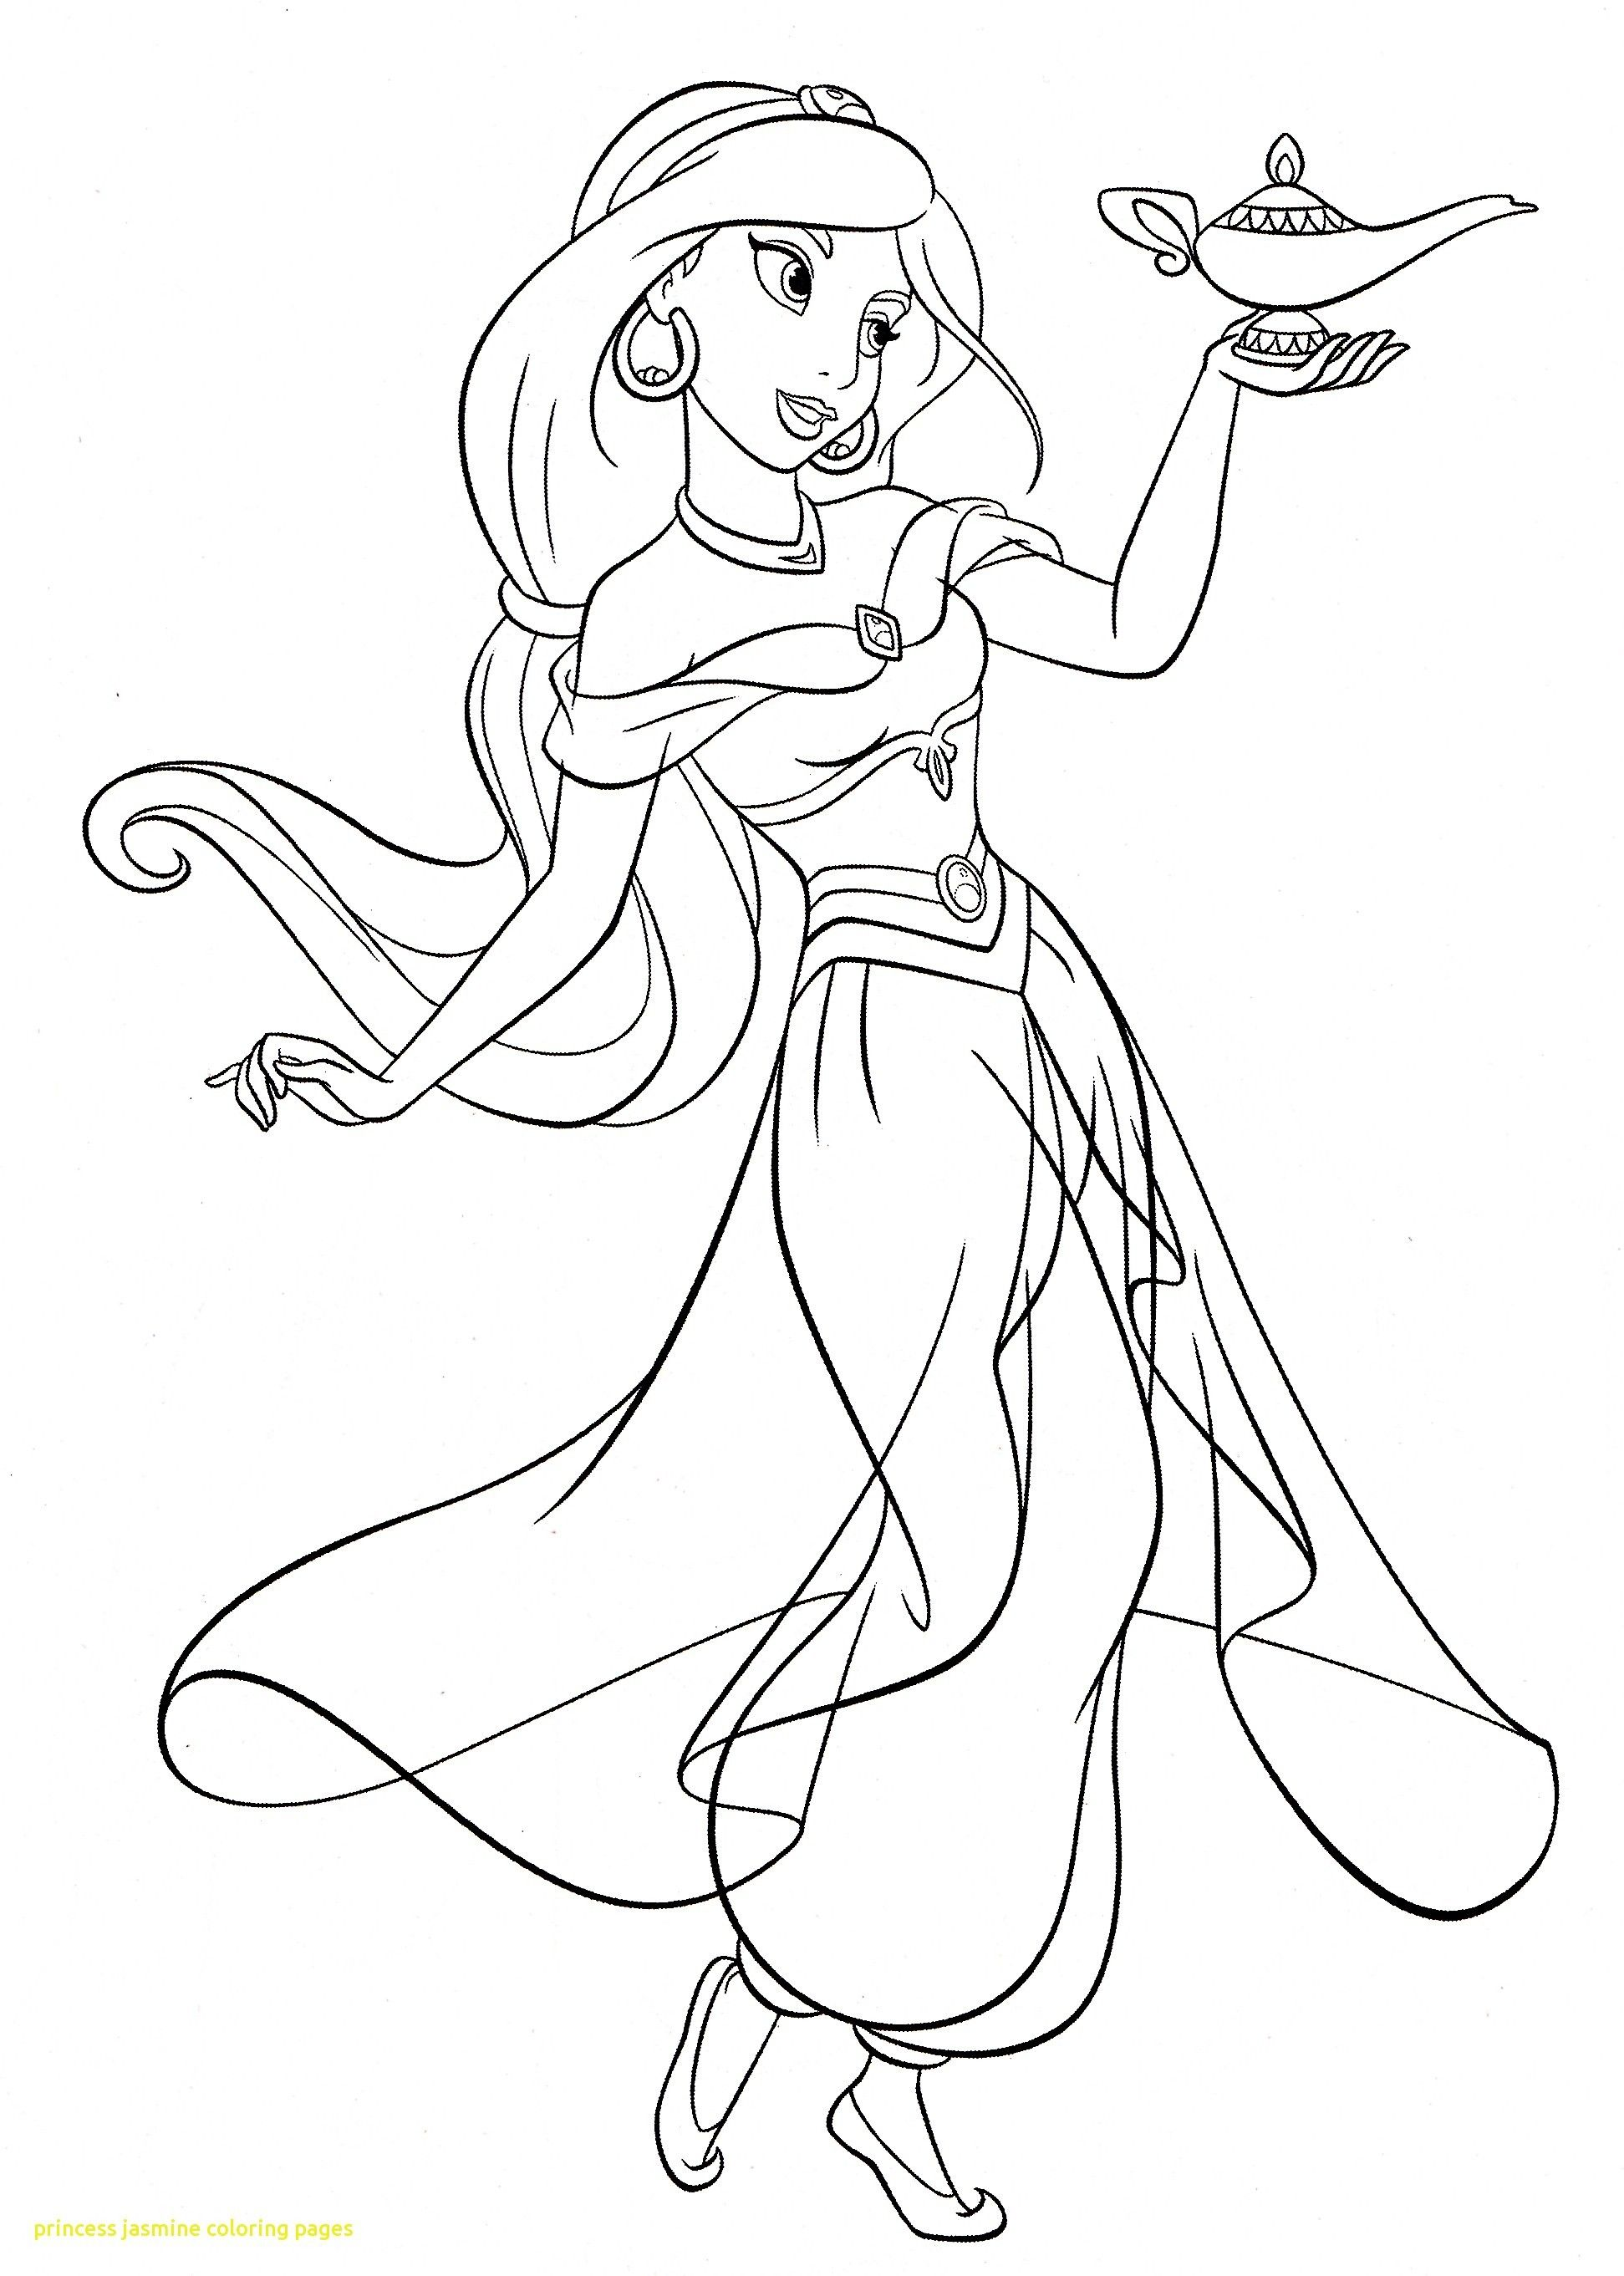 Disney Princess Coloring Pages Jasmine And Aladdin Through The Thousands Of Photos Disney Princess Coloring Pages Princess Coloring Princess Coloring Sheets